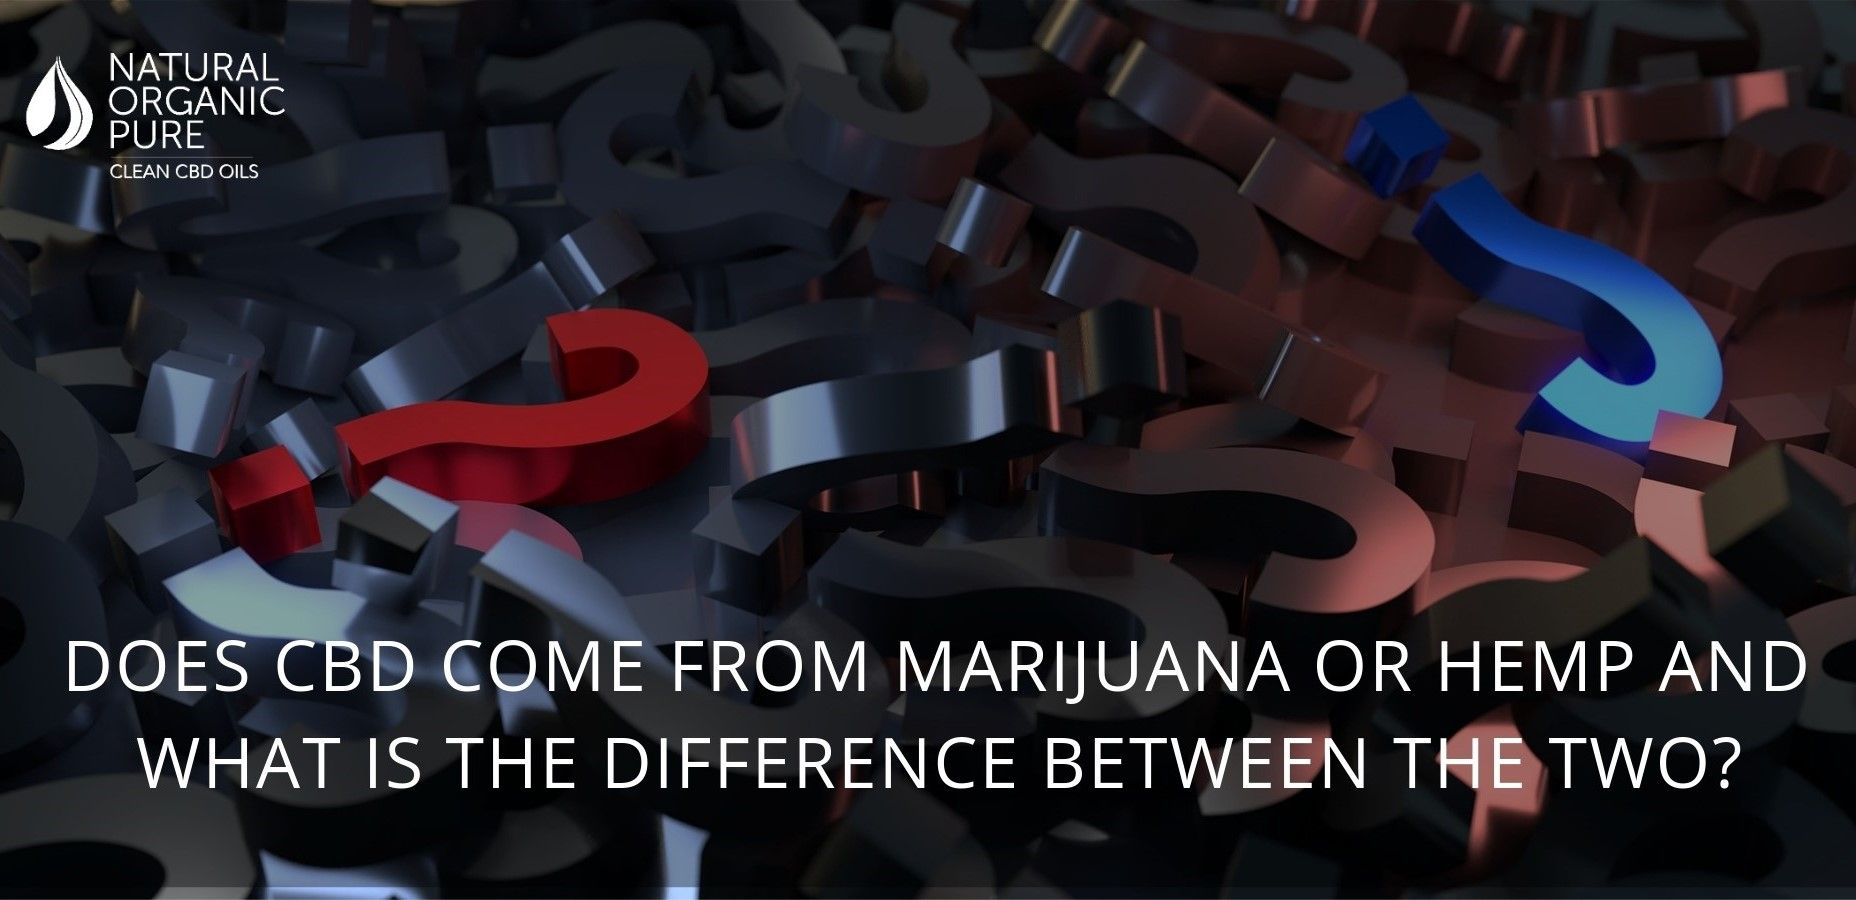 lots of question marks with customer question_Does CBD come from marijuana or hemp and what is the difference between the two_by natural organic pure clean cbd oils